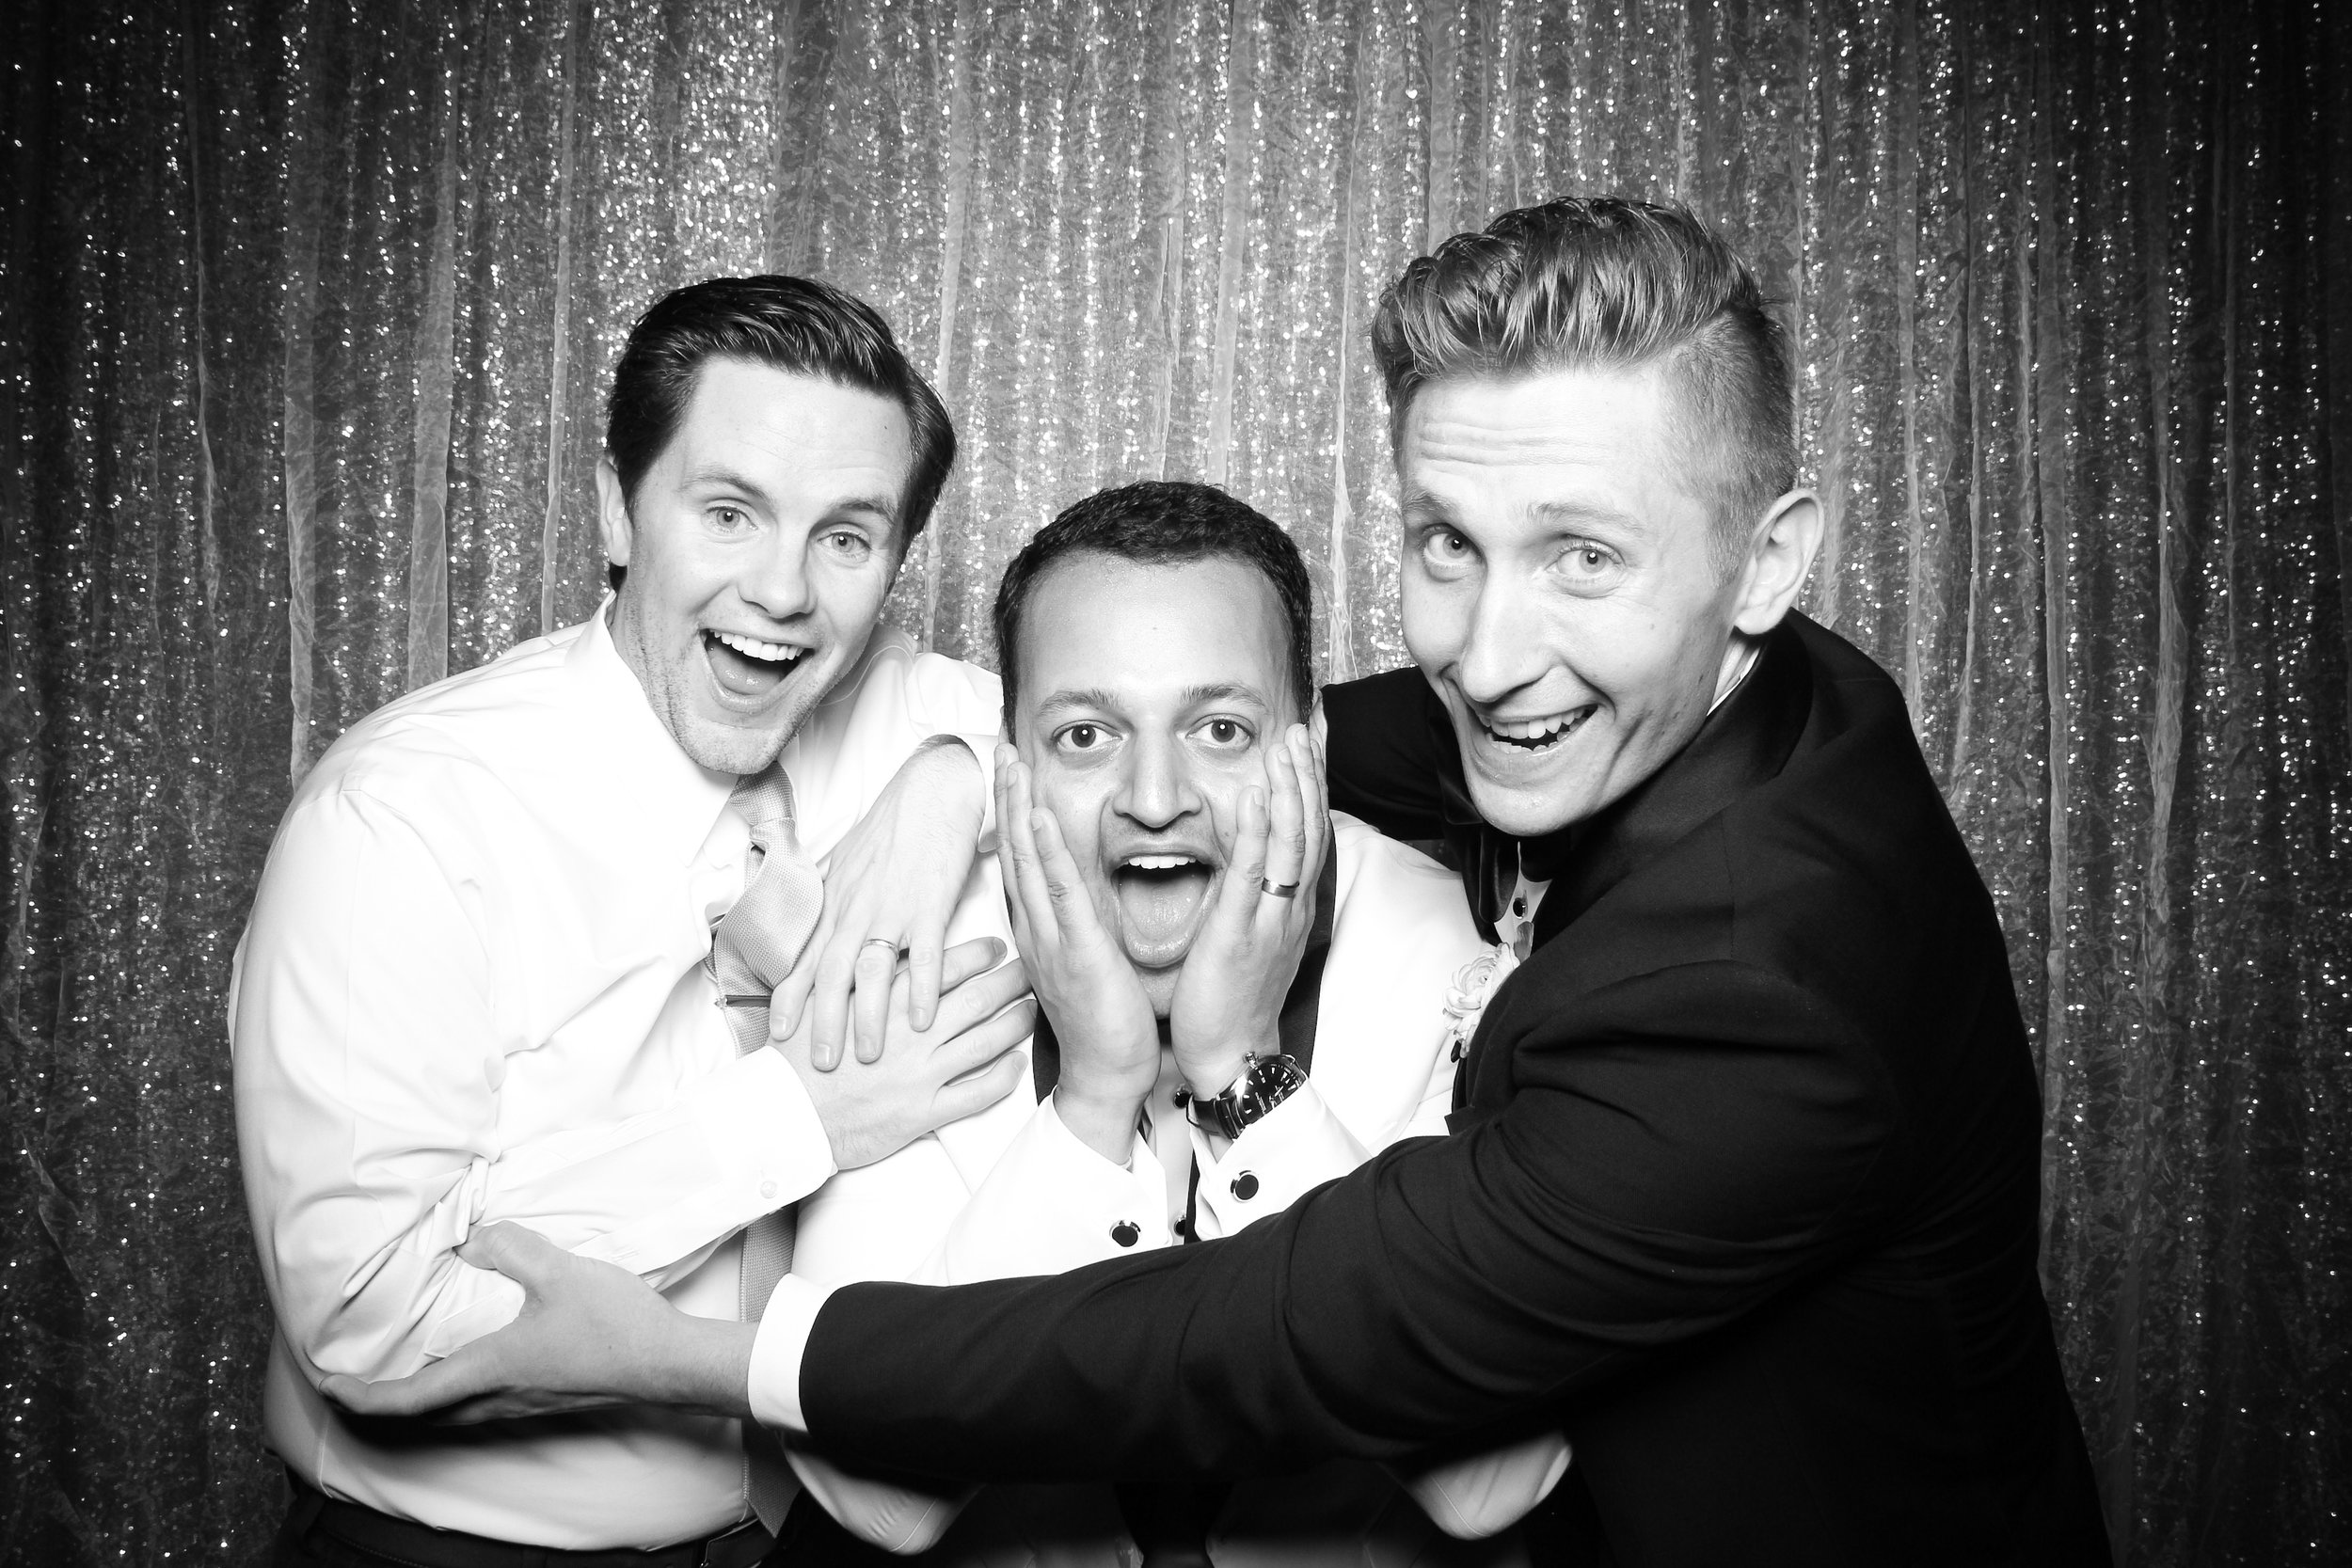 Chicago_Vintage_Wedding_Photobooth_Medinah_Country_Club_03.jpg